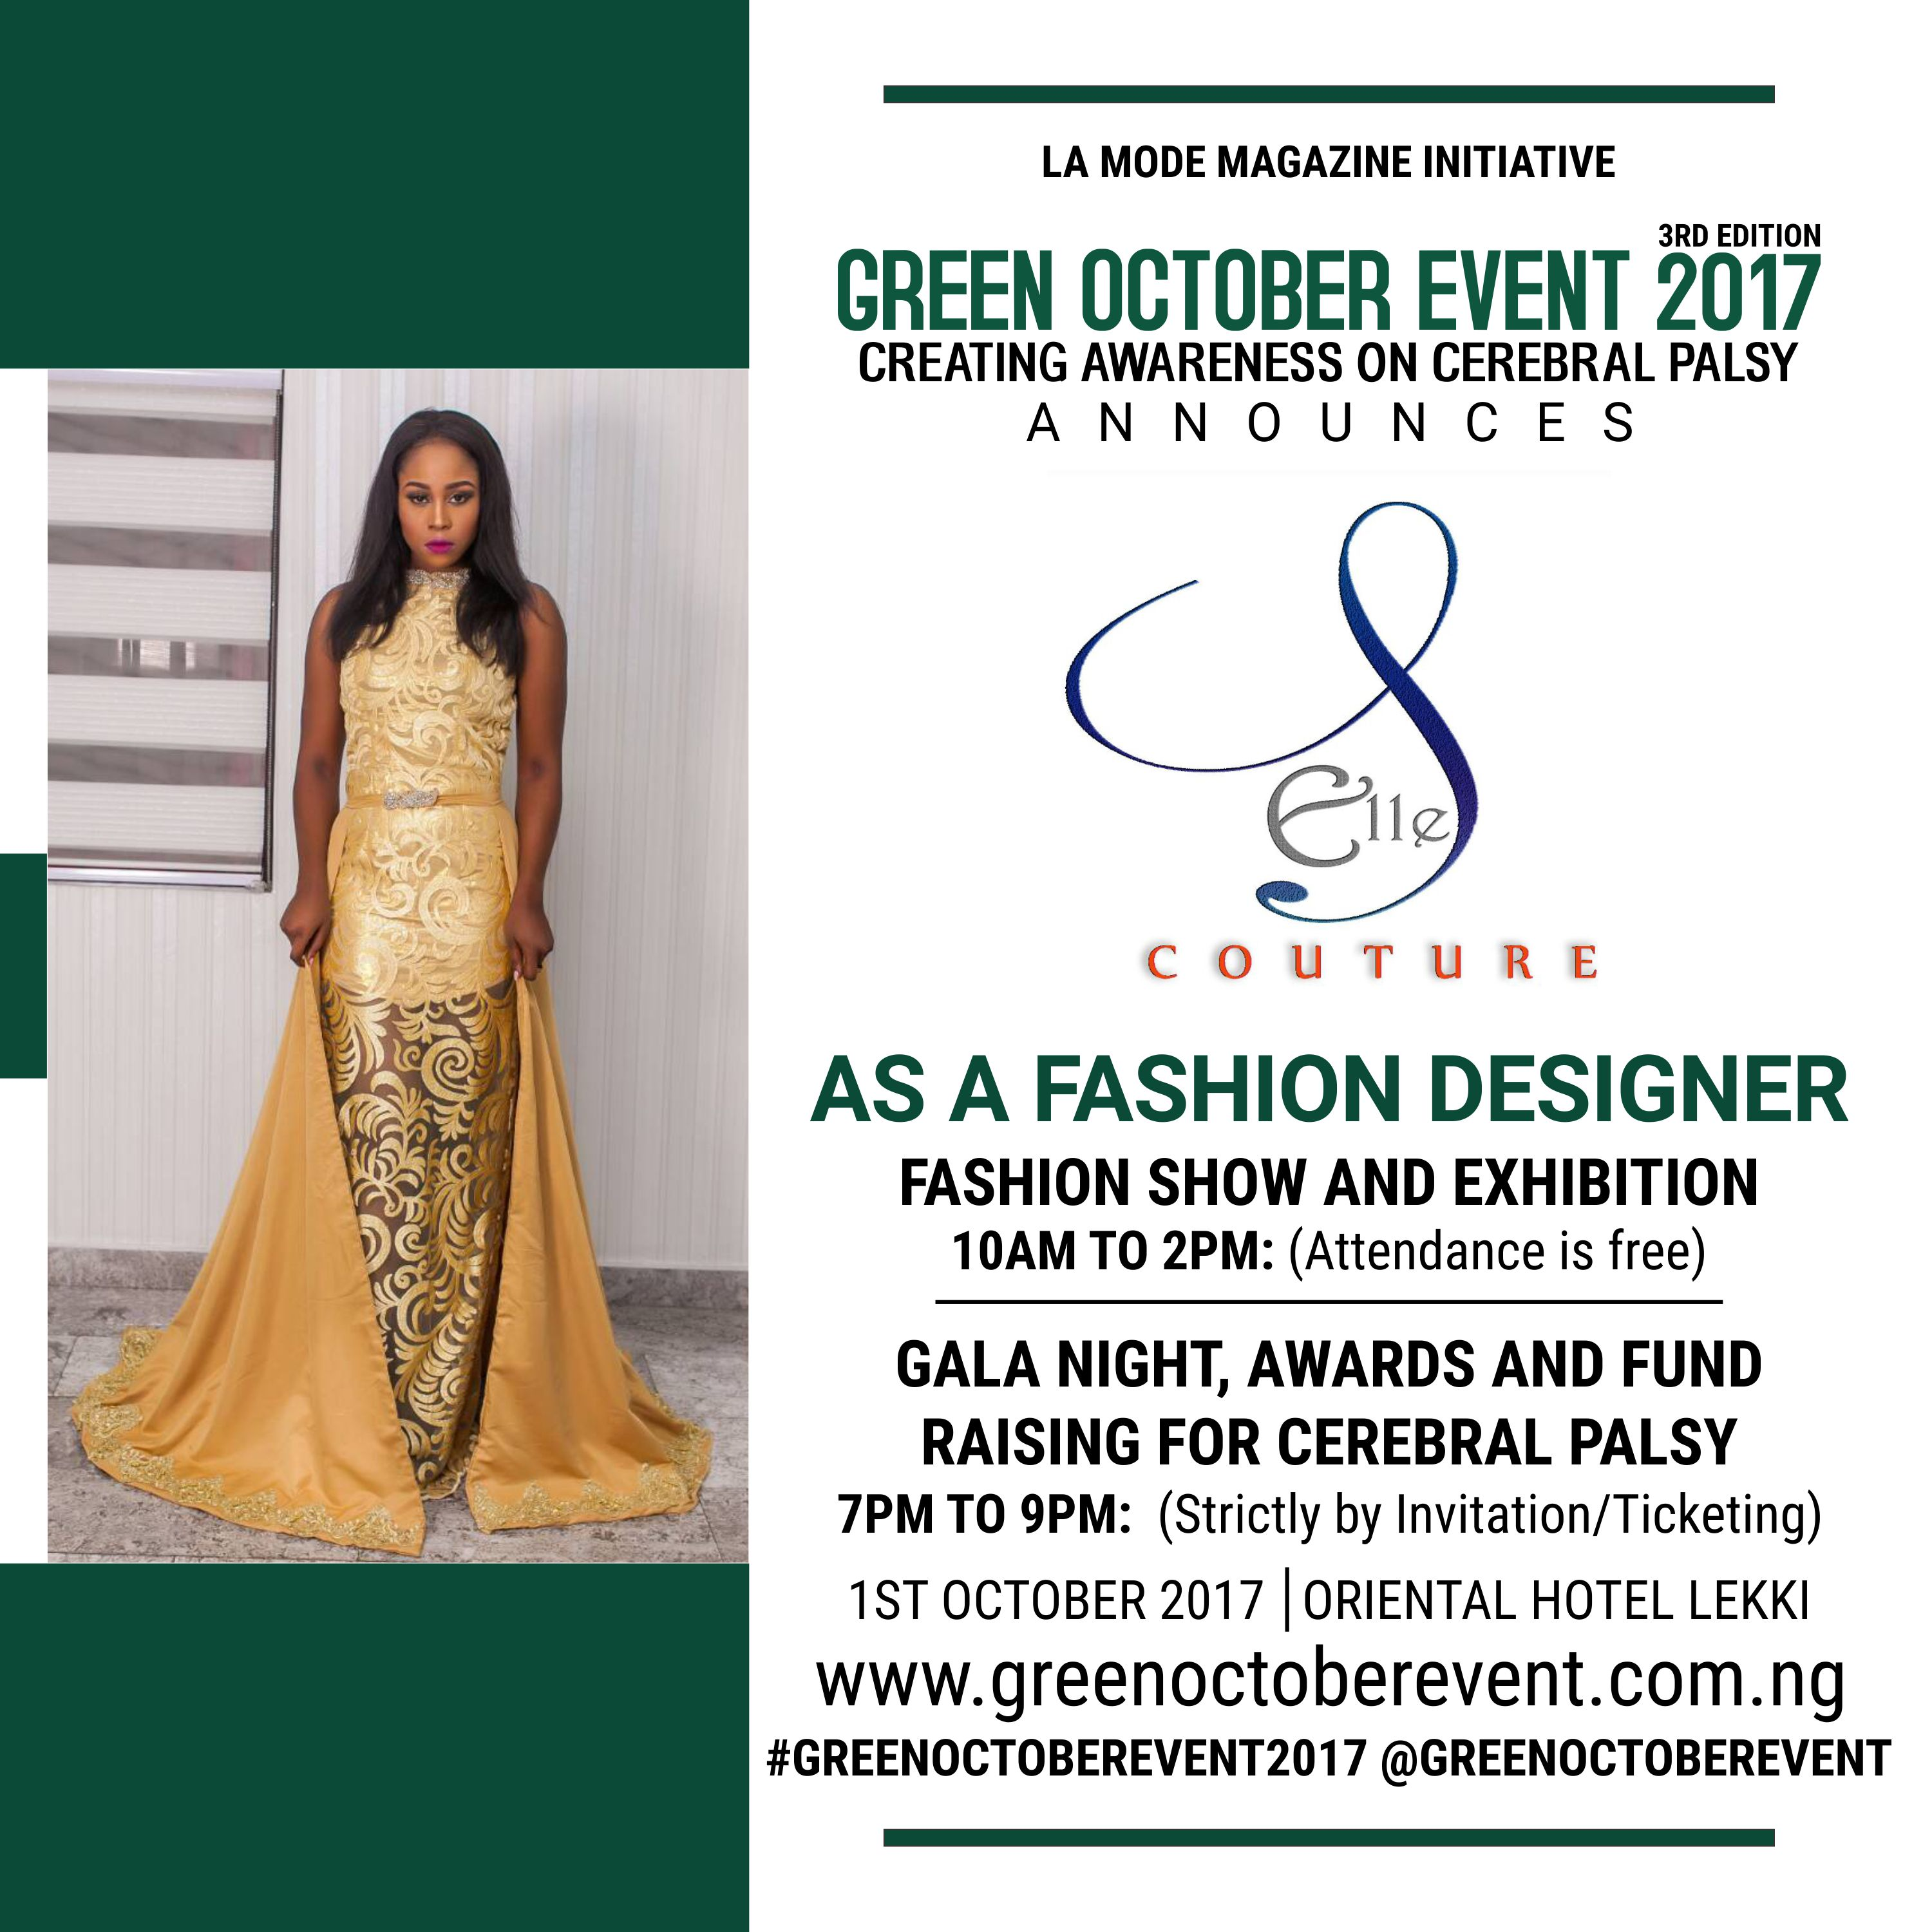 Sammielle couture fashion designer showcasing at green october sammielle couture is a clothing brand that specializes in couture bridal and evening dress for pageantry and red carpet events we also make ready to wear stopboris Gallery